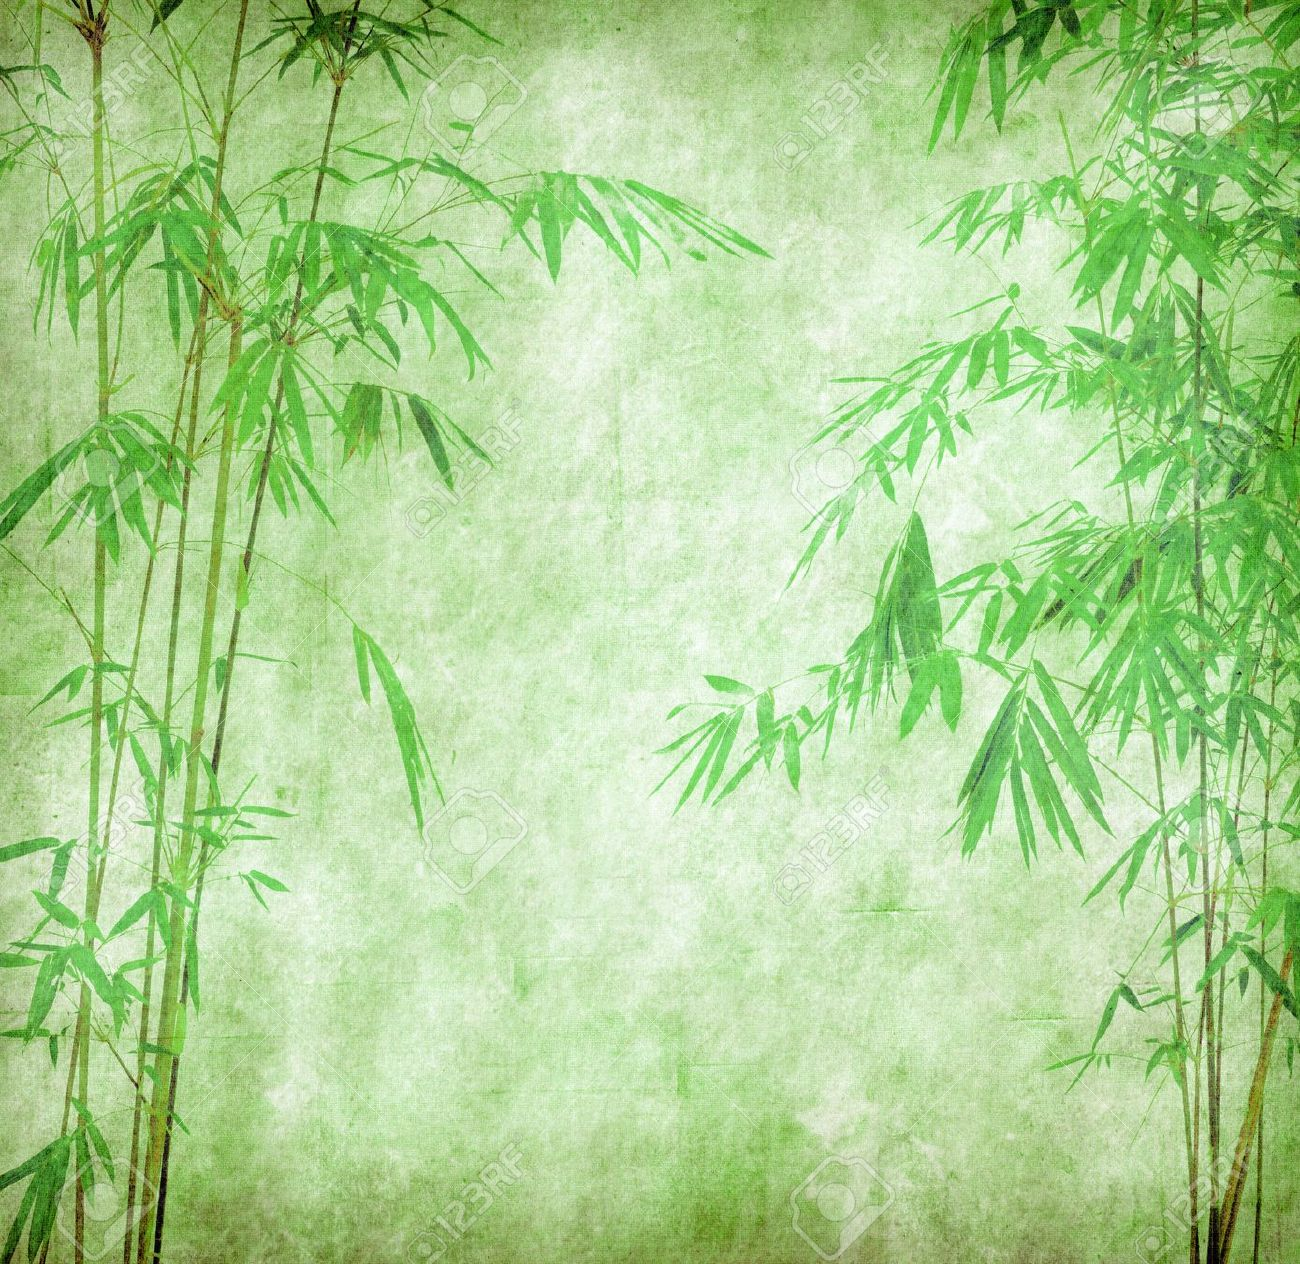 Design Of Chinese Bamboo Trees With Texture Of Handmade Paper Stock Photo Picture And Royalty Free Image Image 10620322